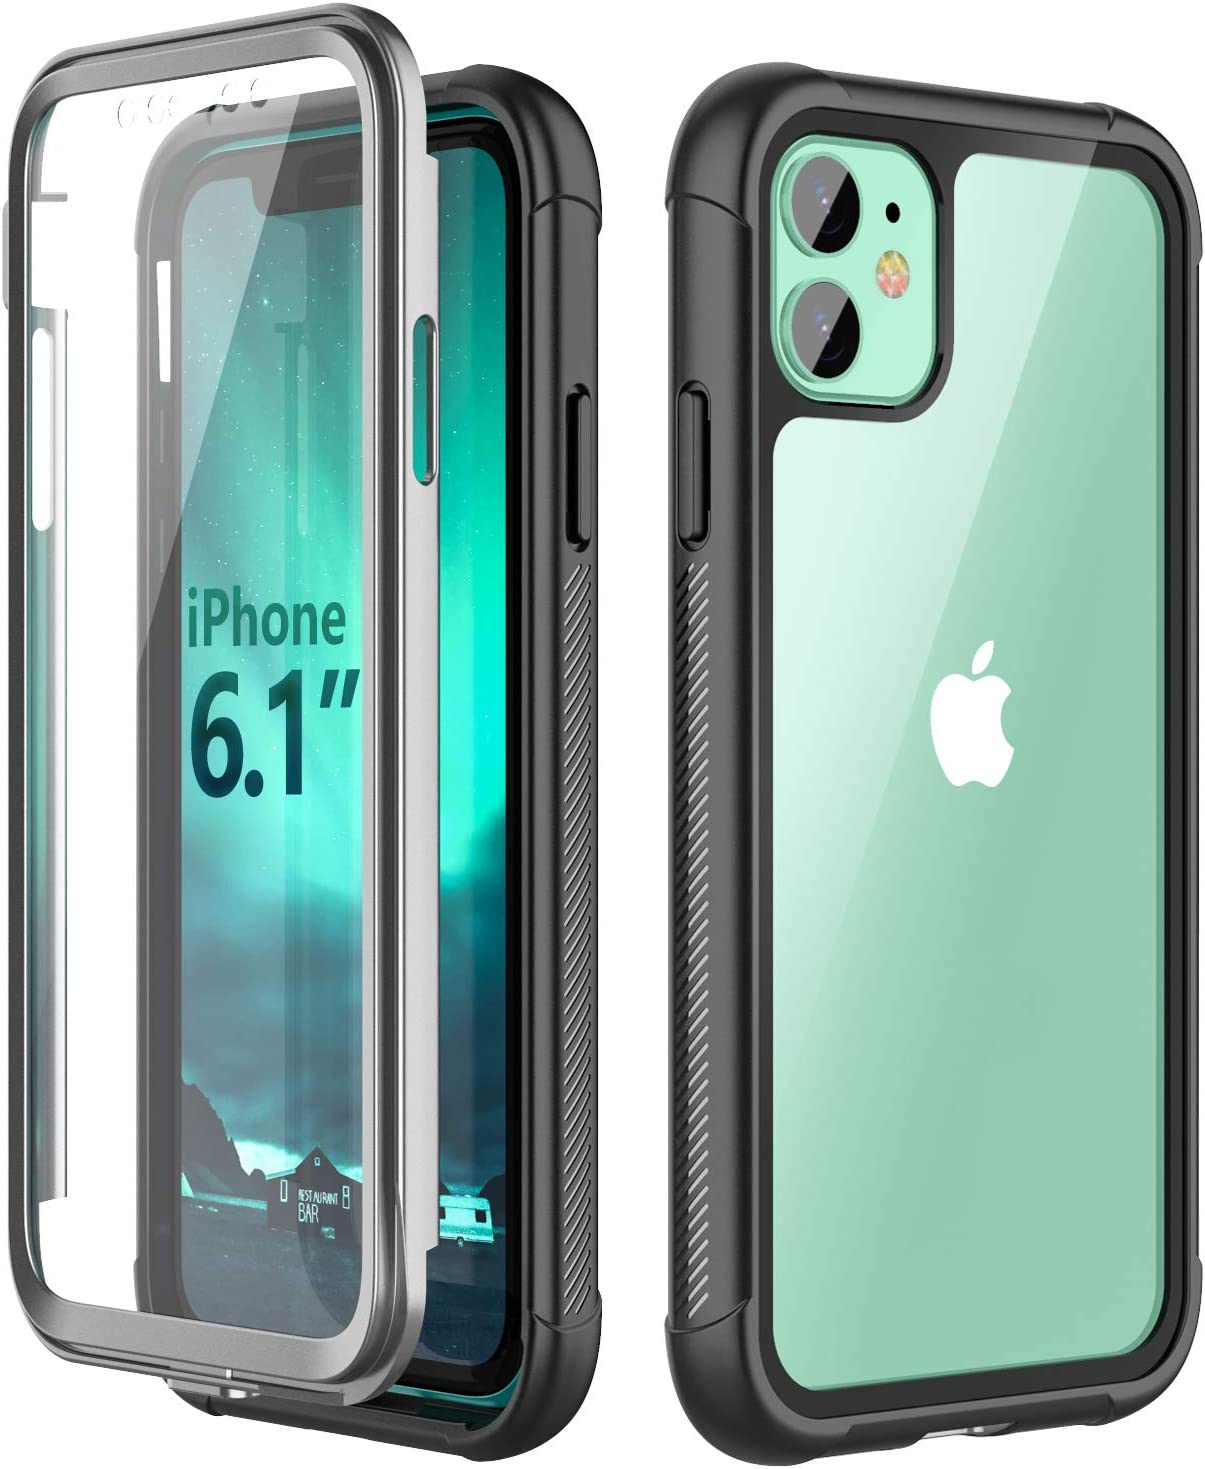 SPIDERCASE for iPhone 11 Case, Built-in Screen Protector Clear Full Body Heavy Duty Protection Shockproof Anti-Scratched Rugged Cases for iPhone 11 6.1 inch 2019